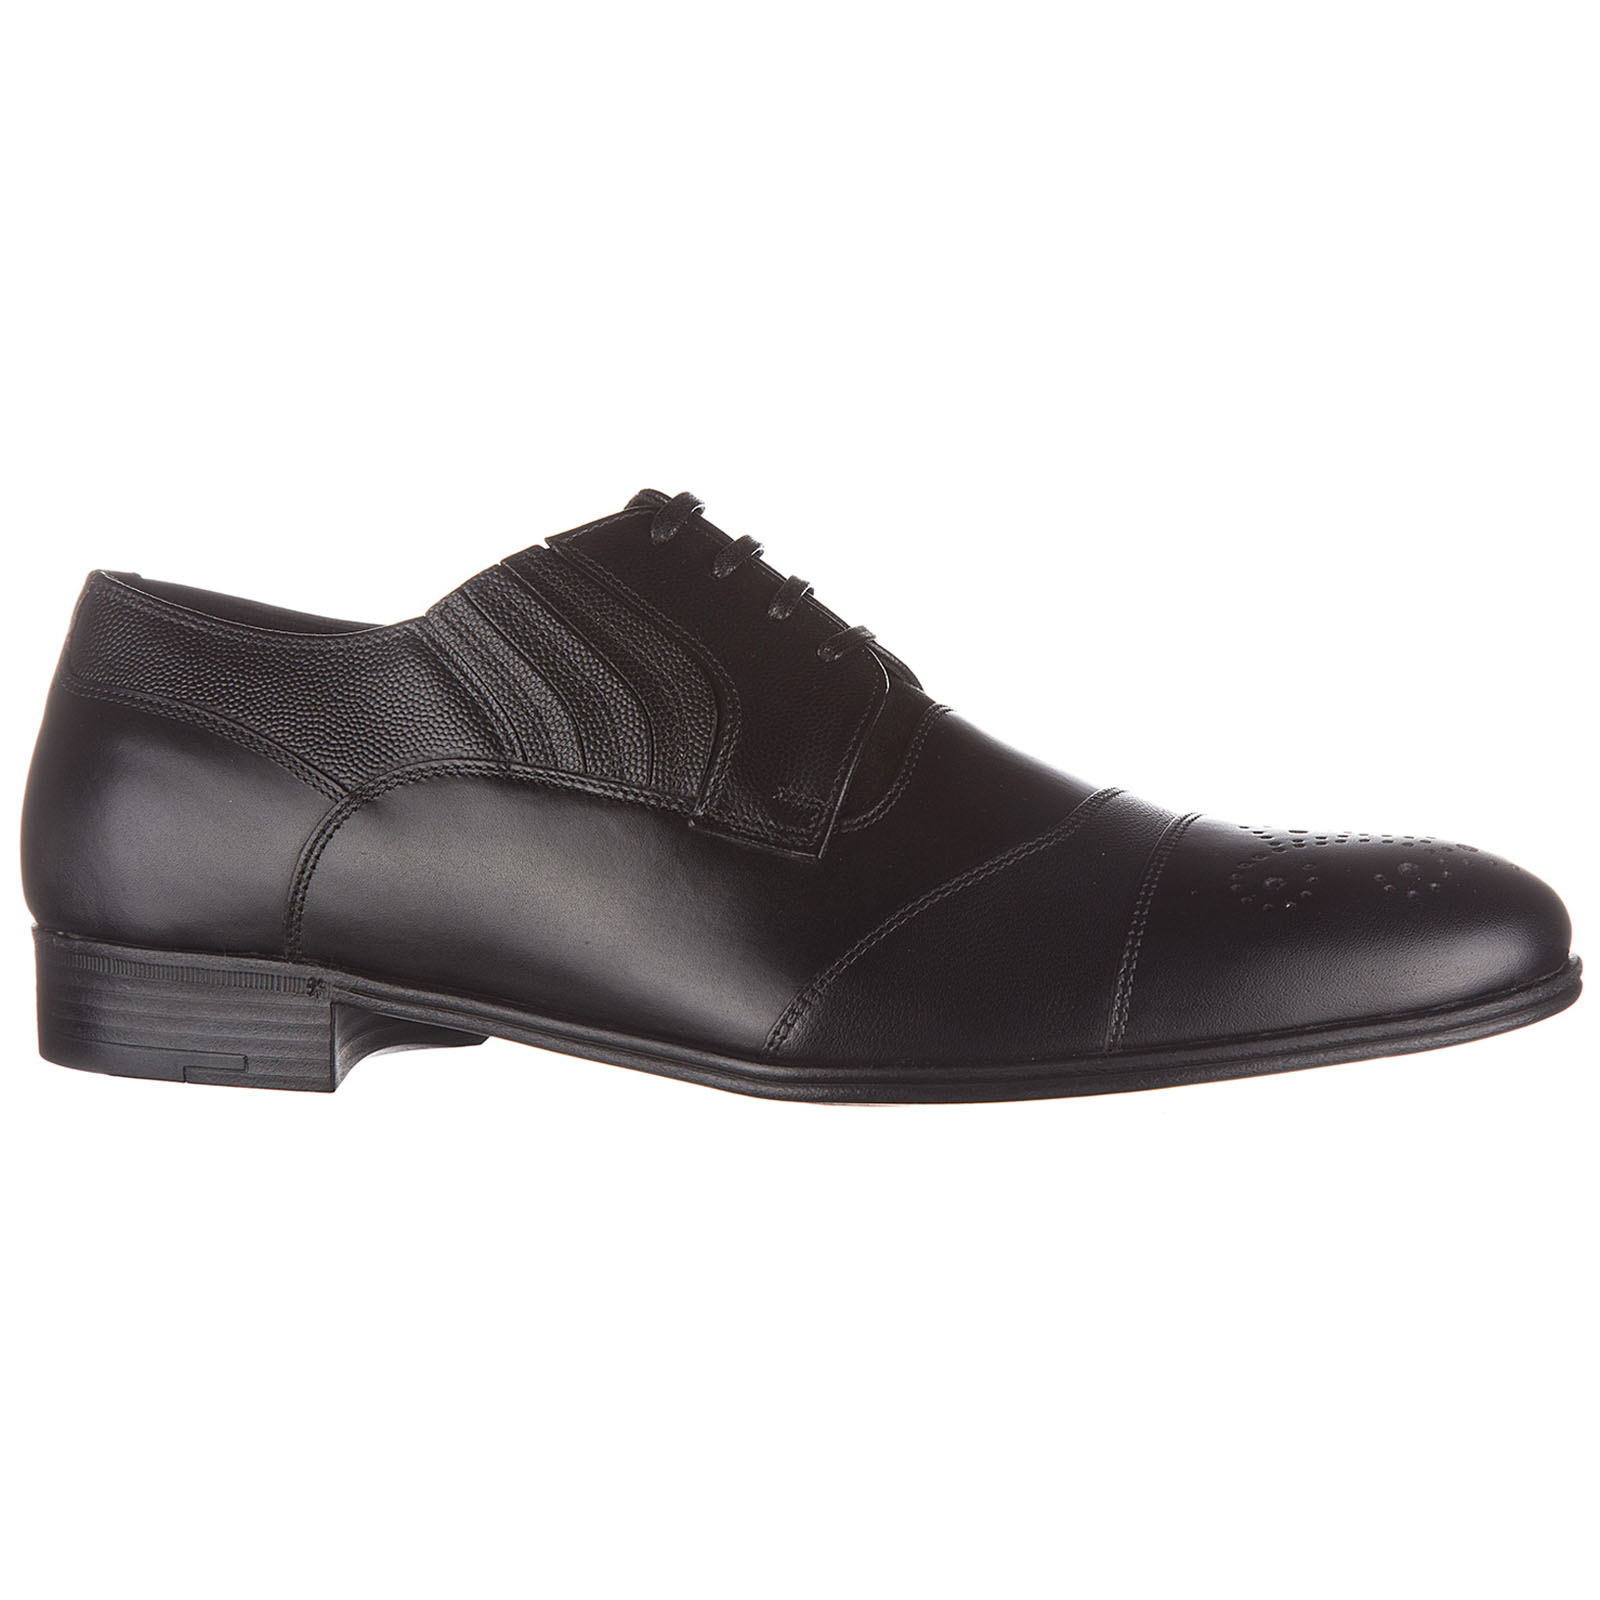 Men's classic leather lace up laced formal shoes derby carracci